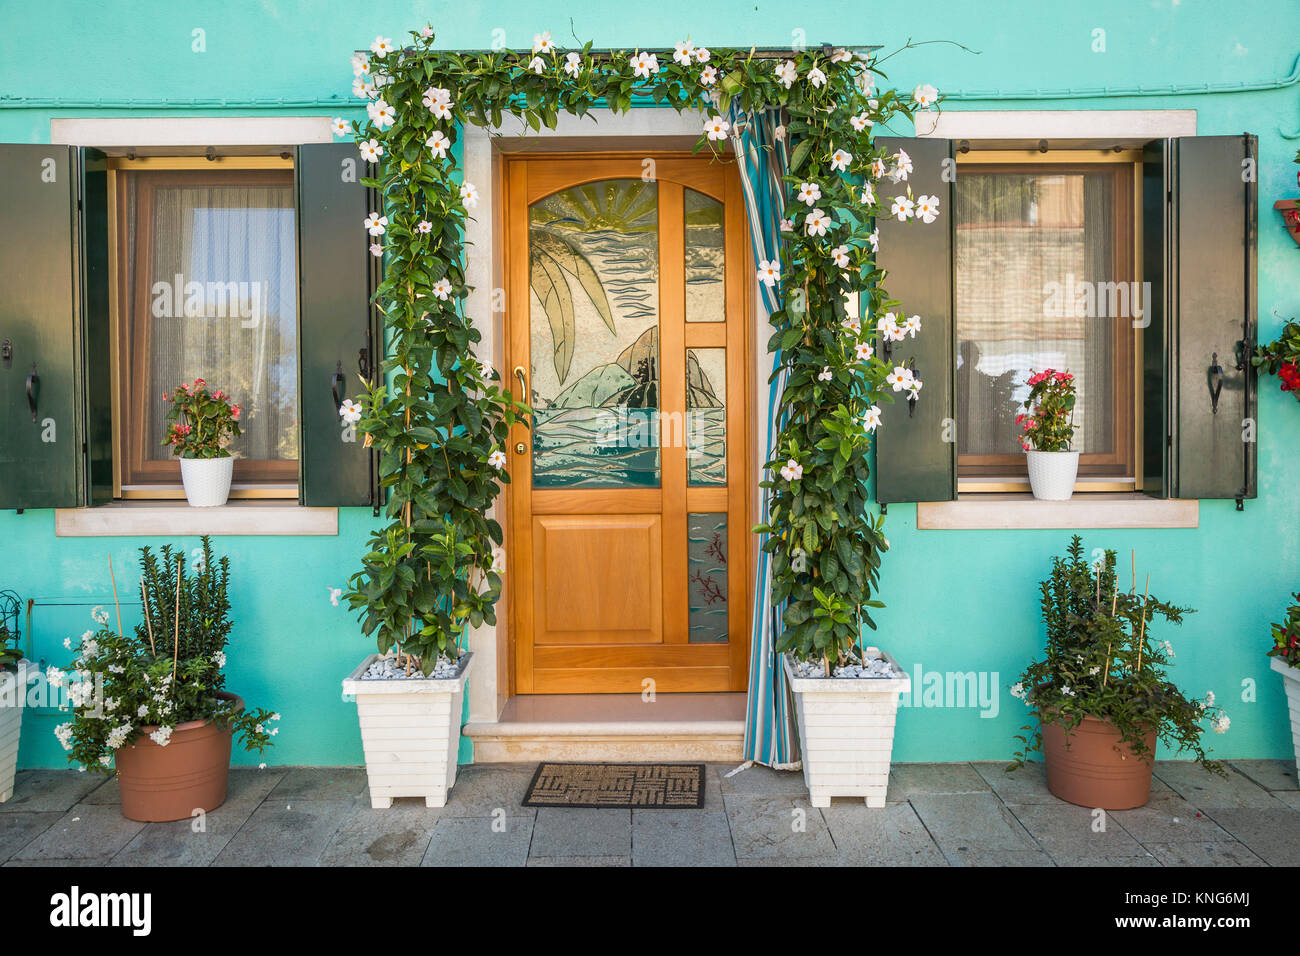 A colorful building front entrance in the Venetian vlllage of Burano, Venice, Italy, Europe. - Stock Image